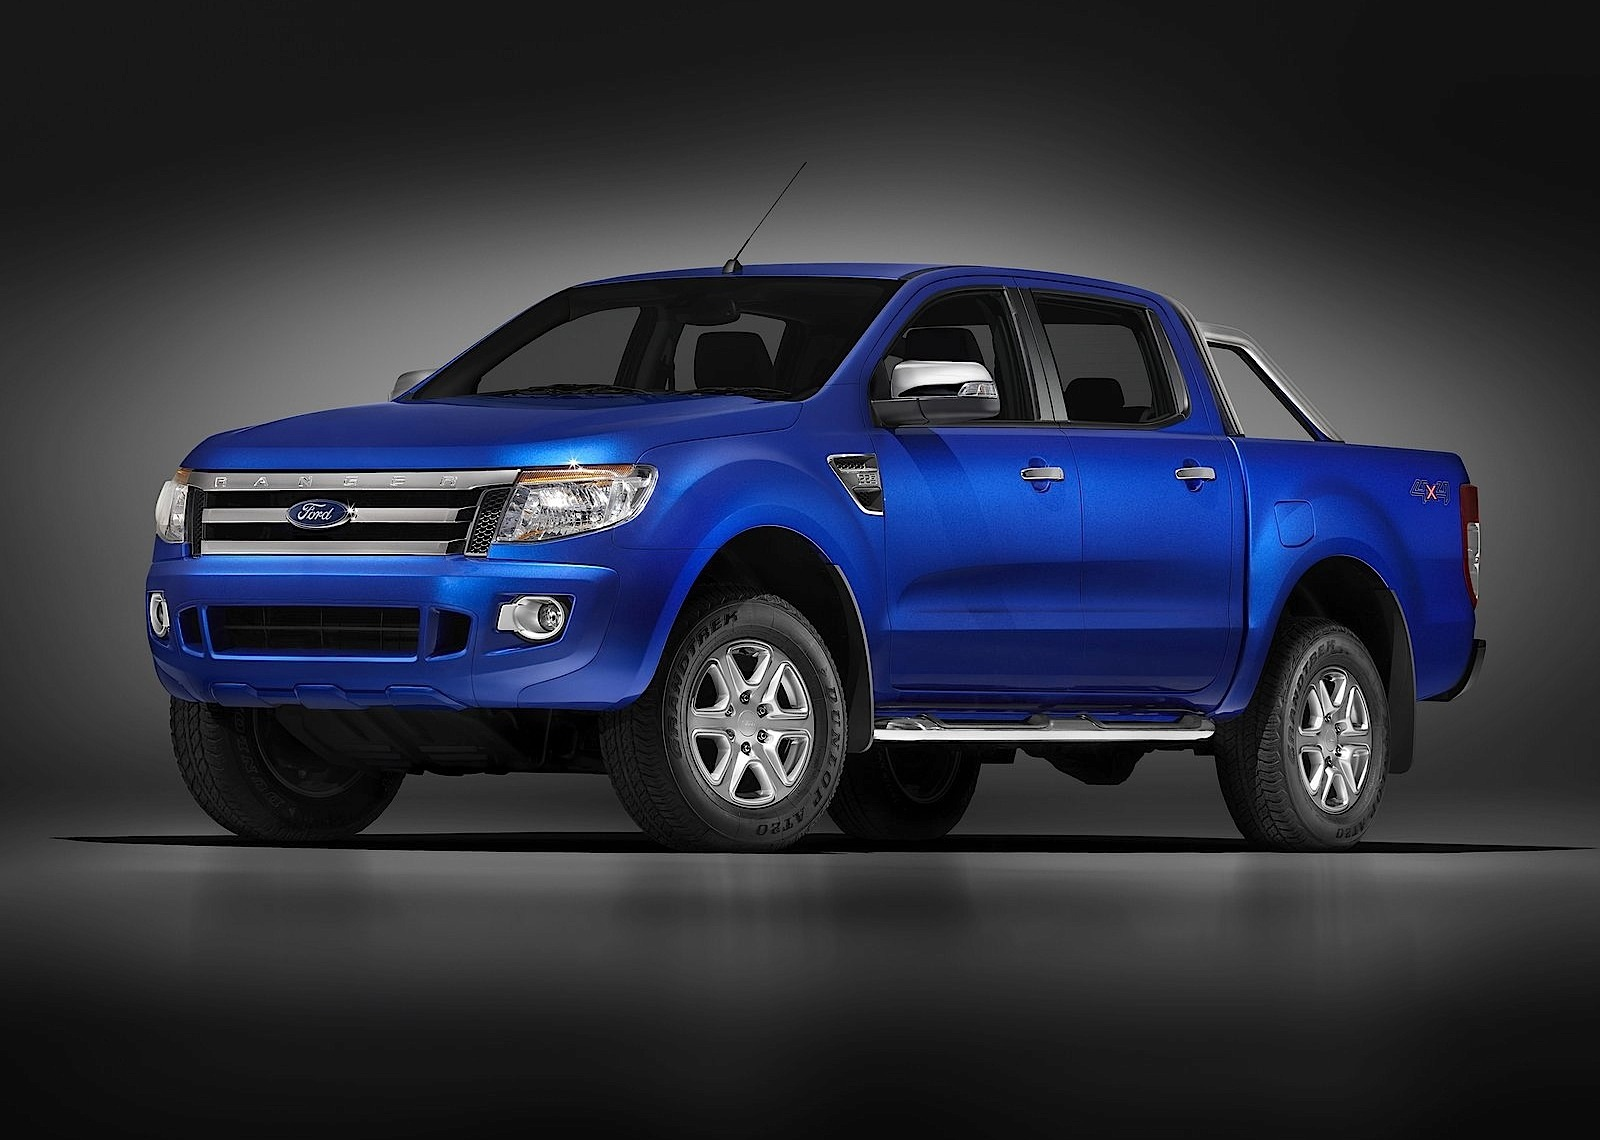 Ford Ranger Tuning >> FORD Ranger Double Cab - 2011, 2012, 2013, 2014, 2015 - autoevolution